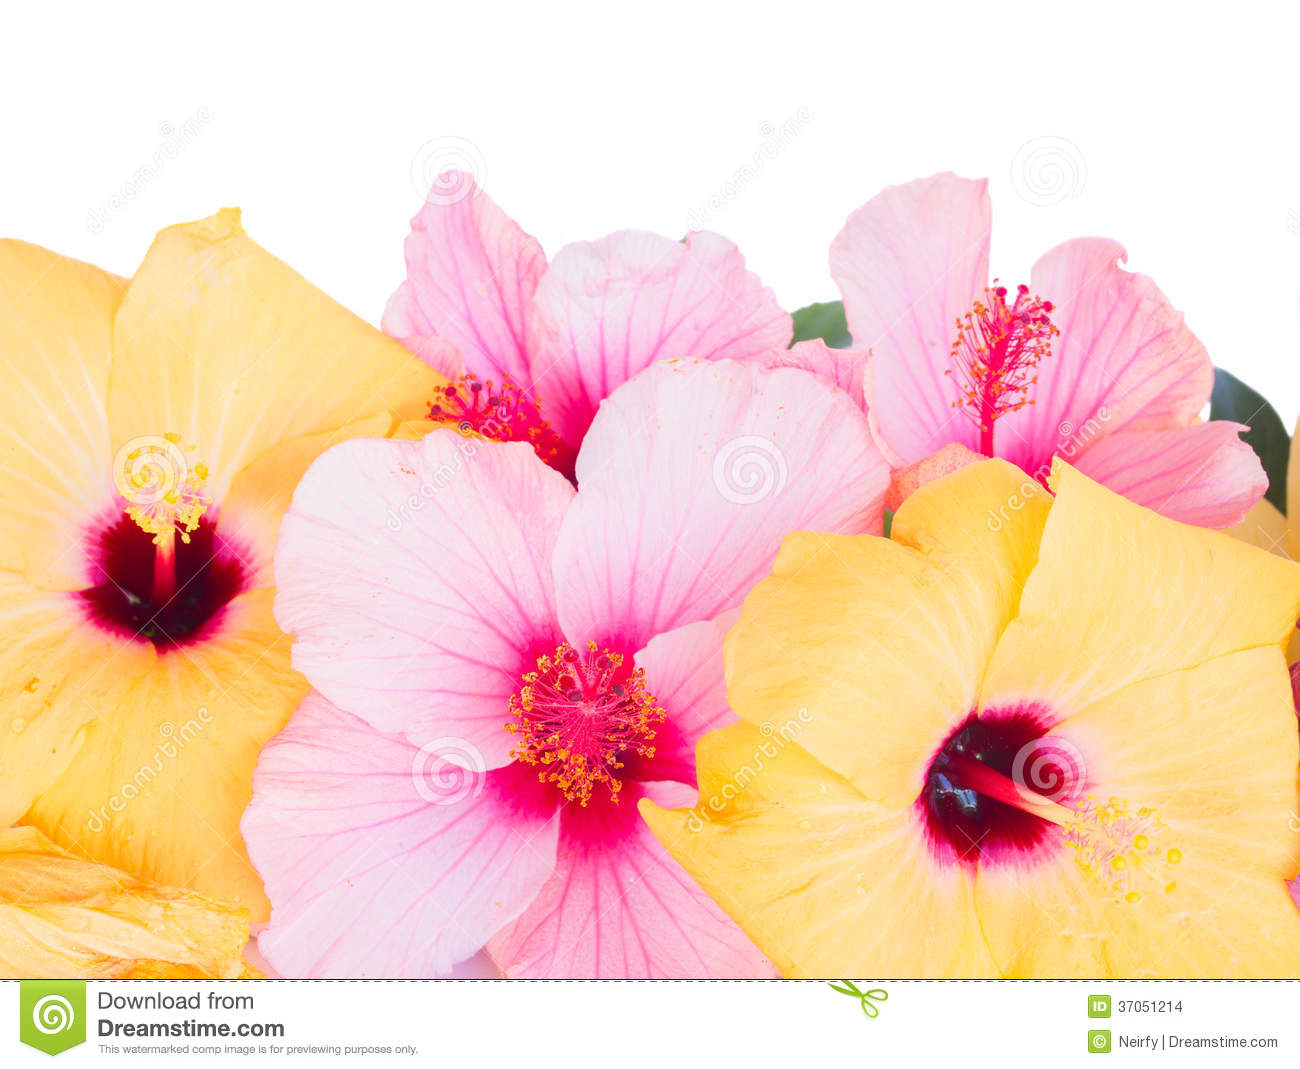 Close up border of colorful hibiscus flowers stock photo image of download close up border of colorful hibiscus flowers stock photo image of flower gibiscus izmirmasajfo